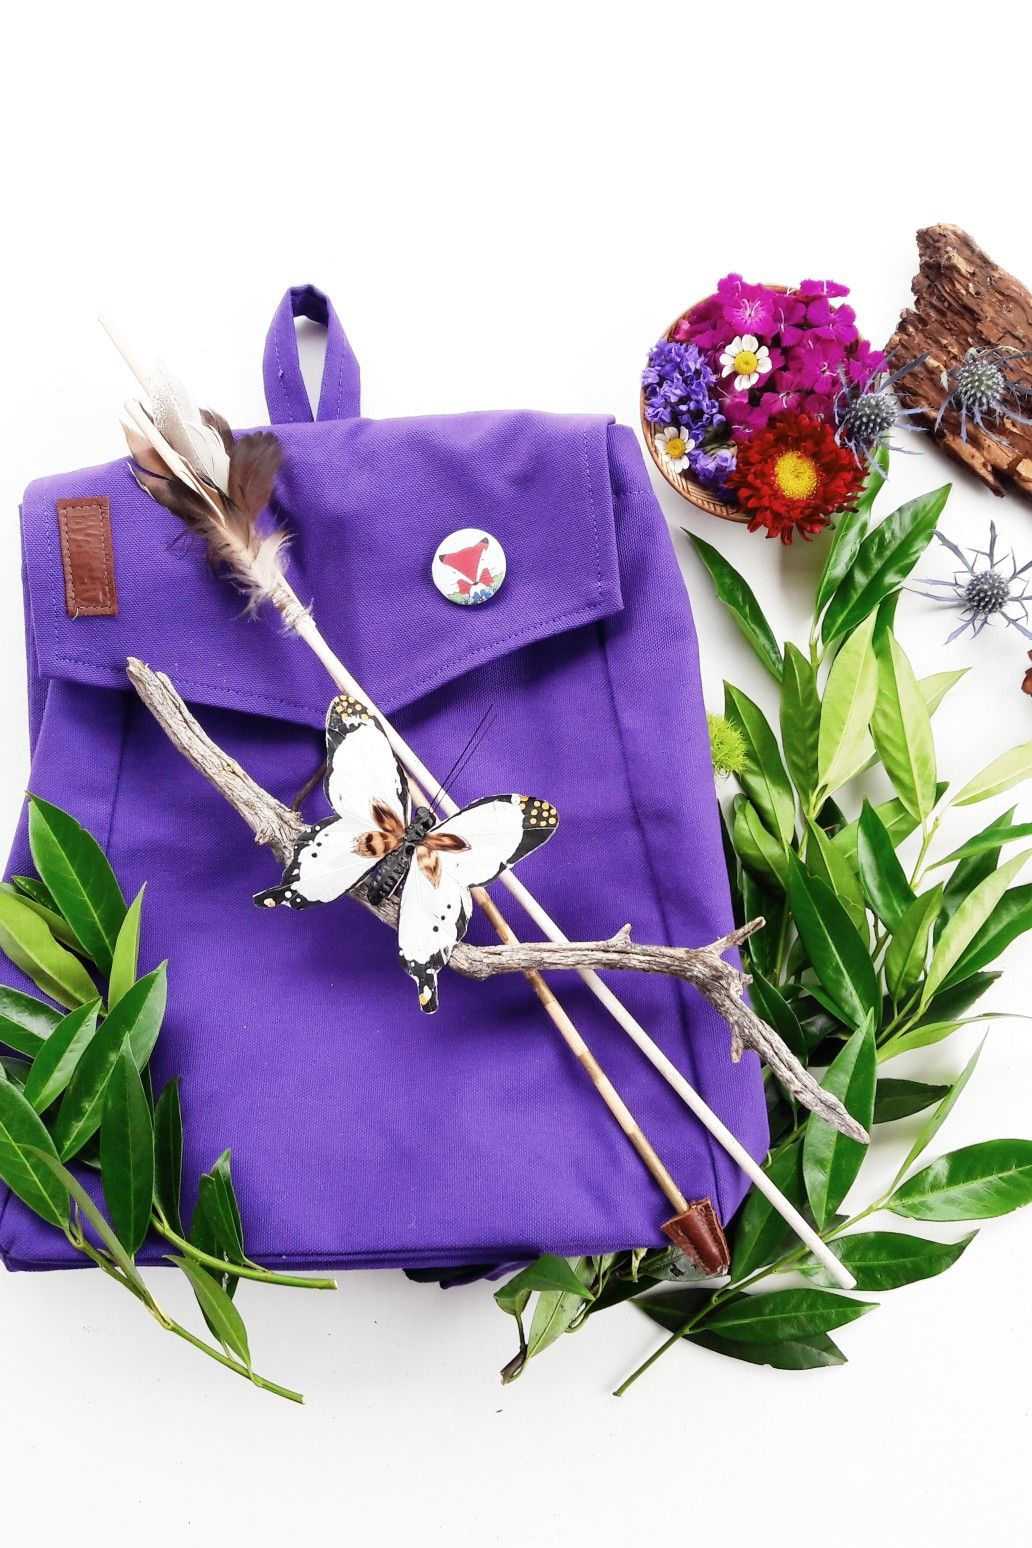 252c0a7487d3 Cascade Handmade   Adventure Backpack   Always ready to explore with this  sturdy outdoor gear for kids  Purple backpack for kids in nature flat lay